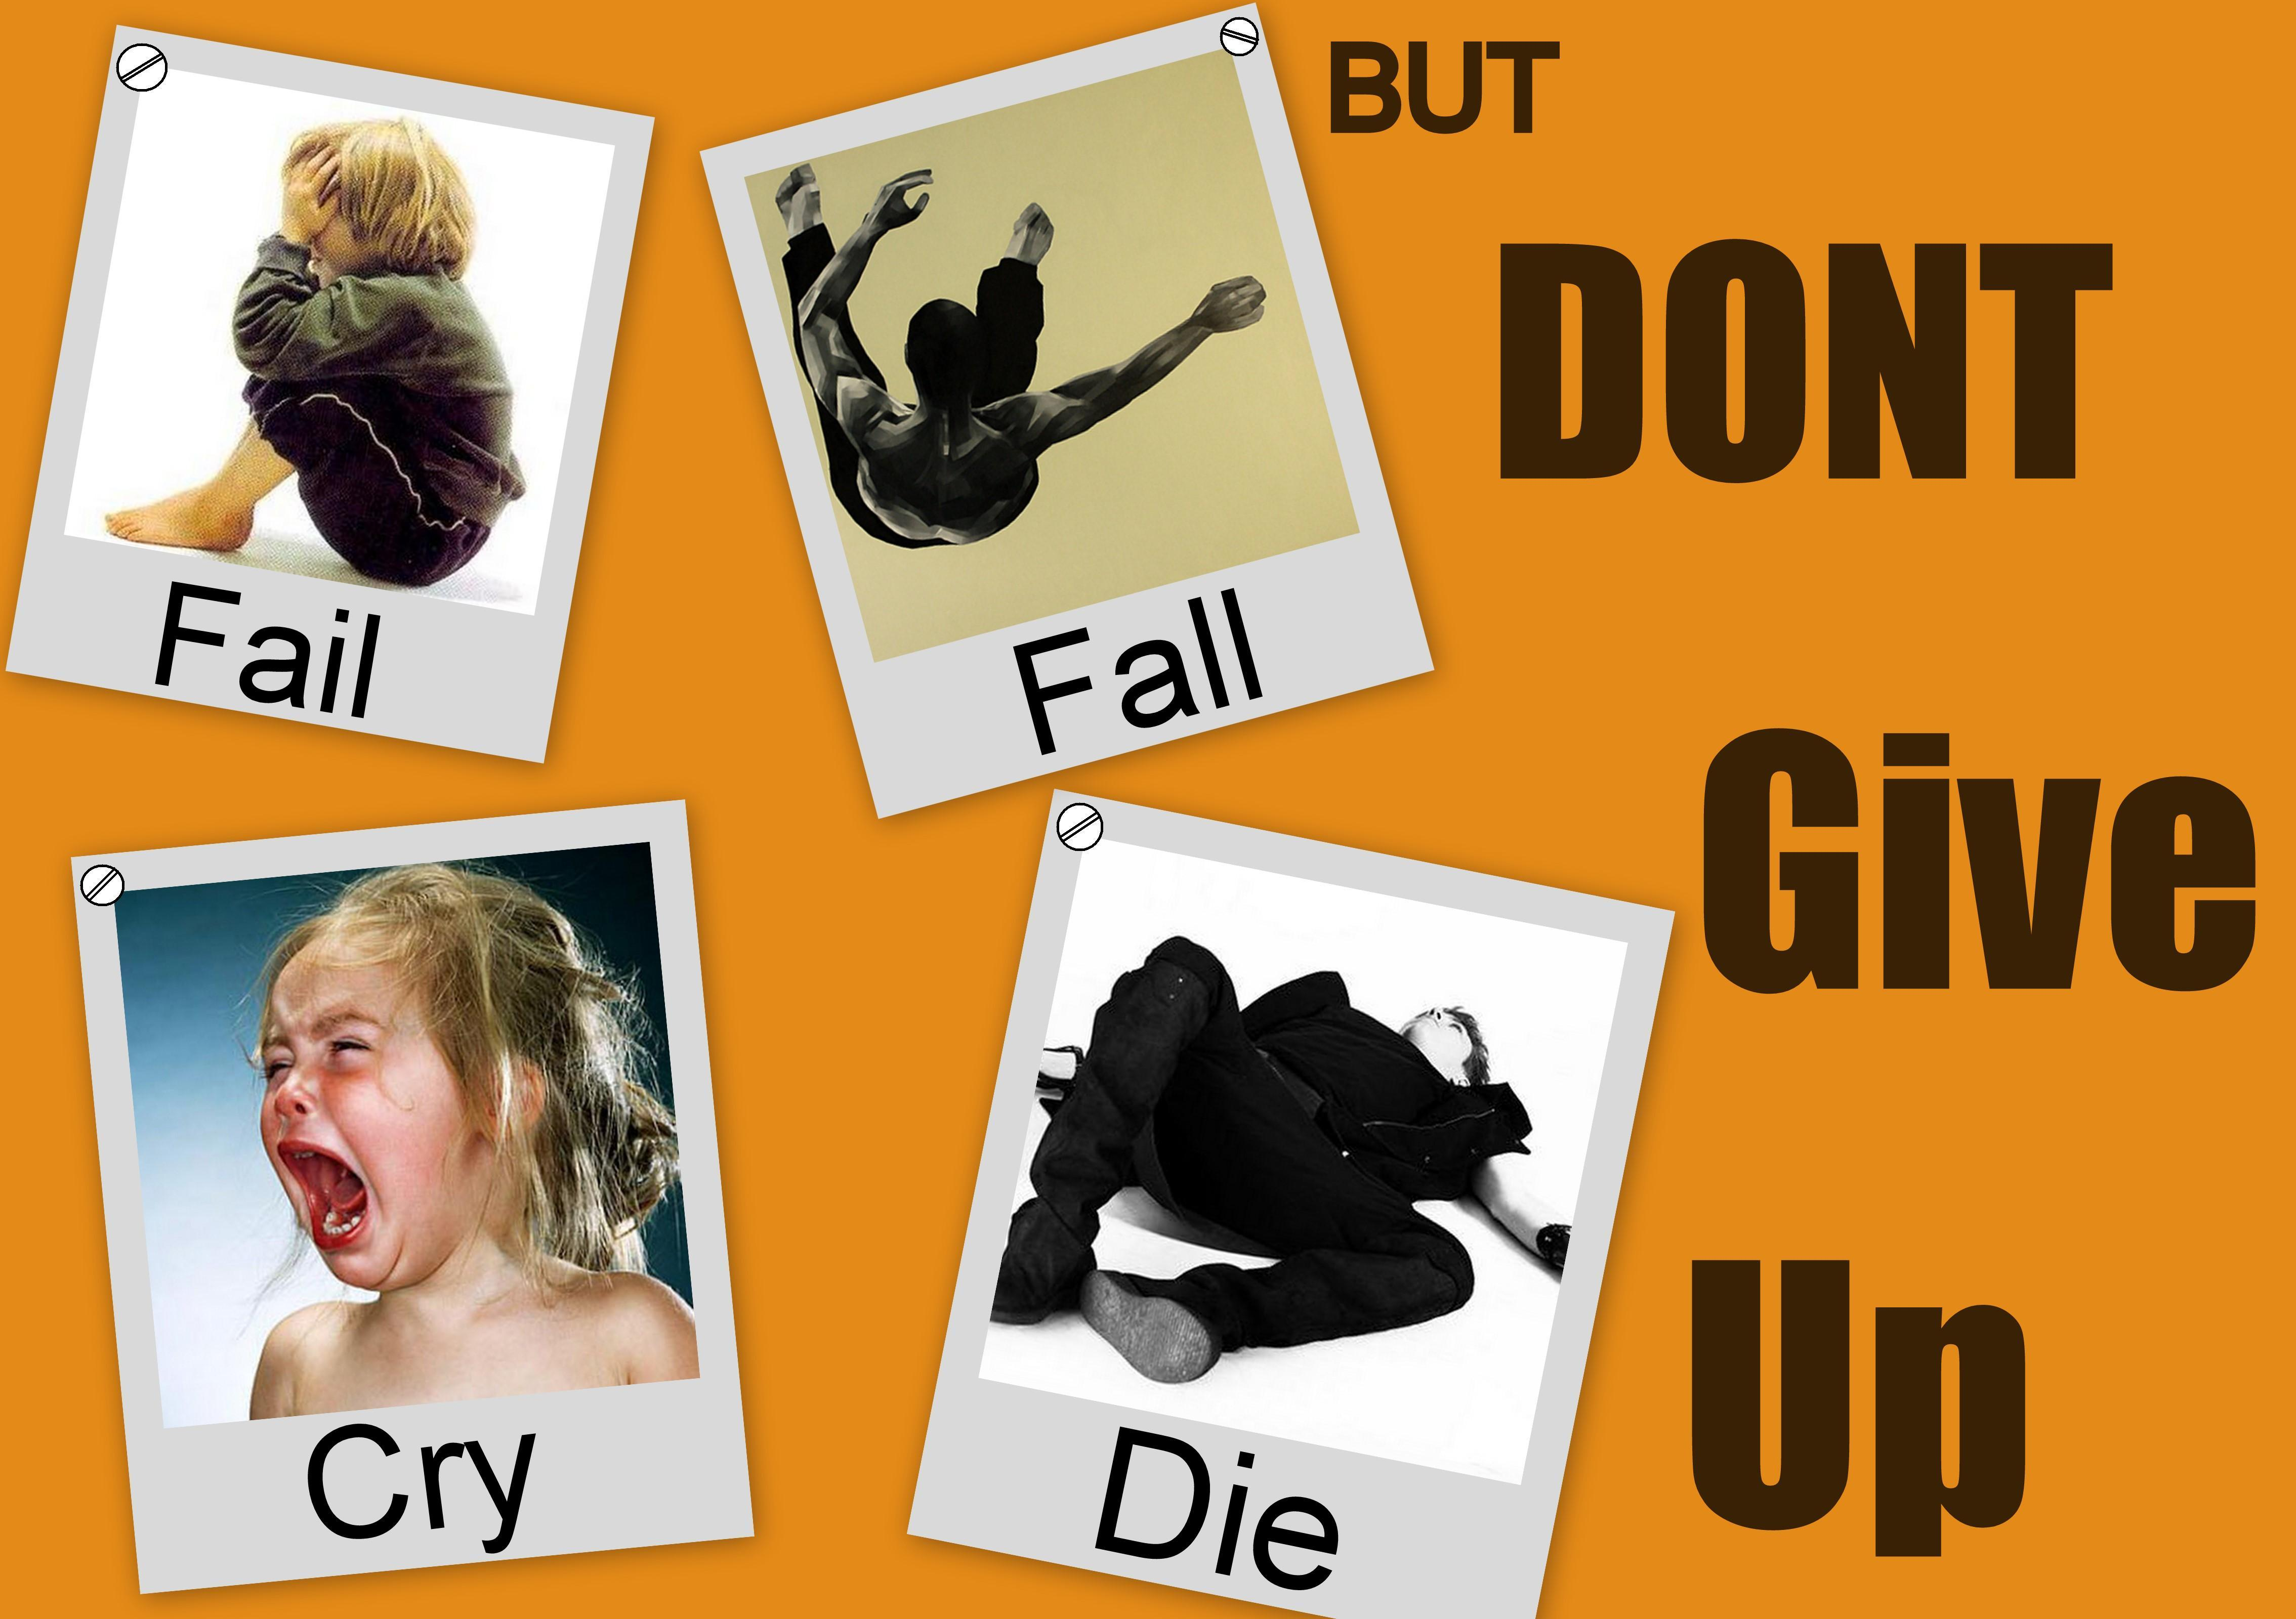 fail fall cry even die but dont give up motivational wallpaper 300x211 ...